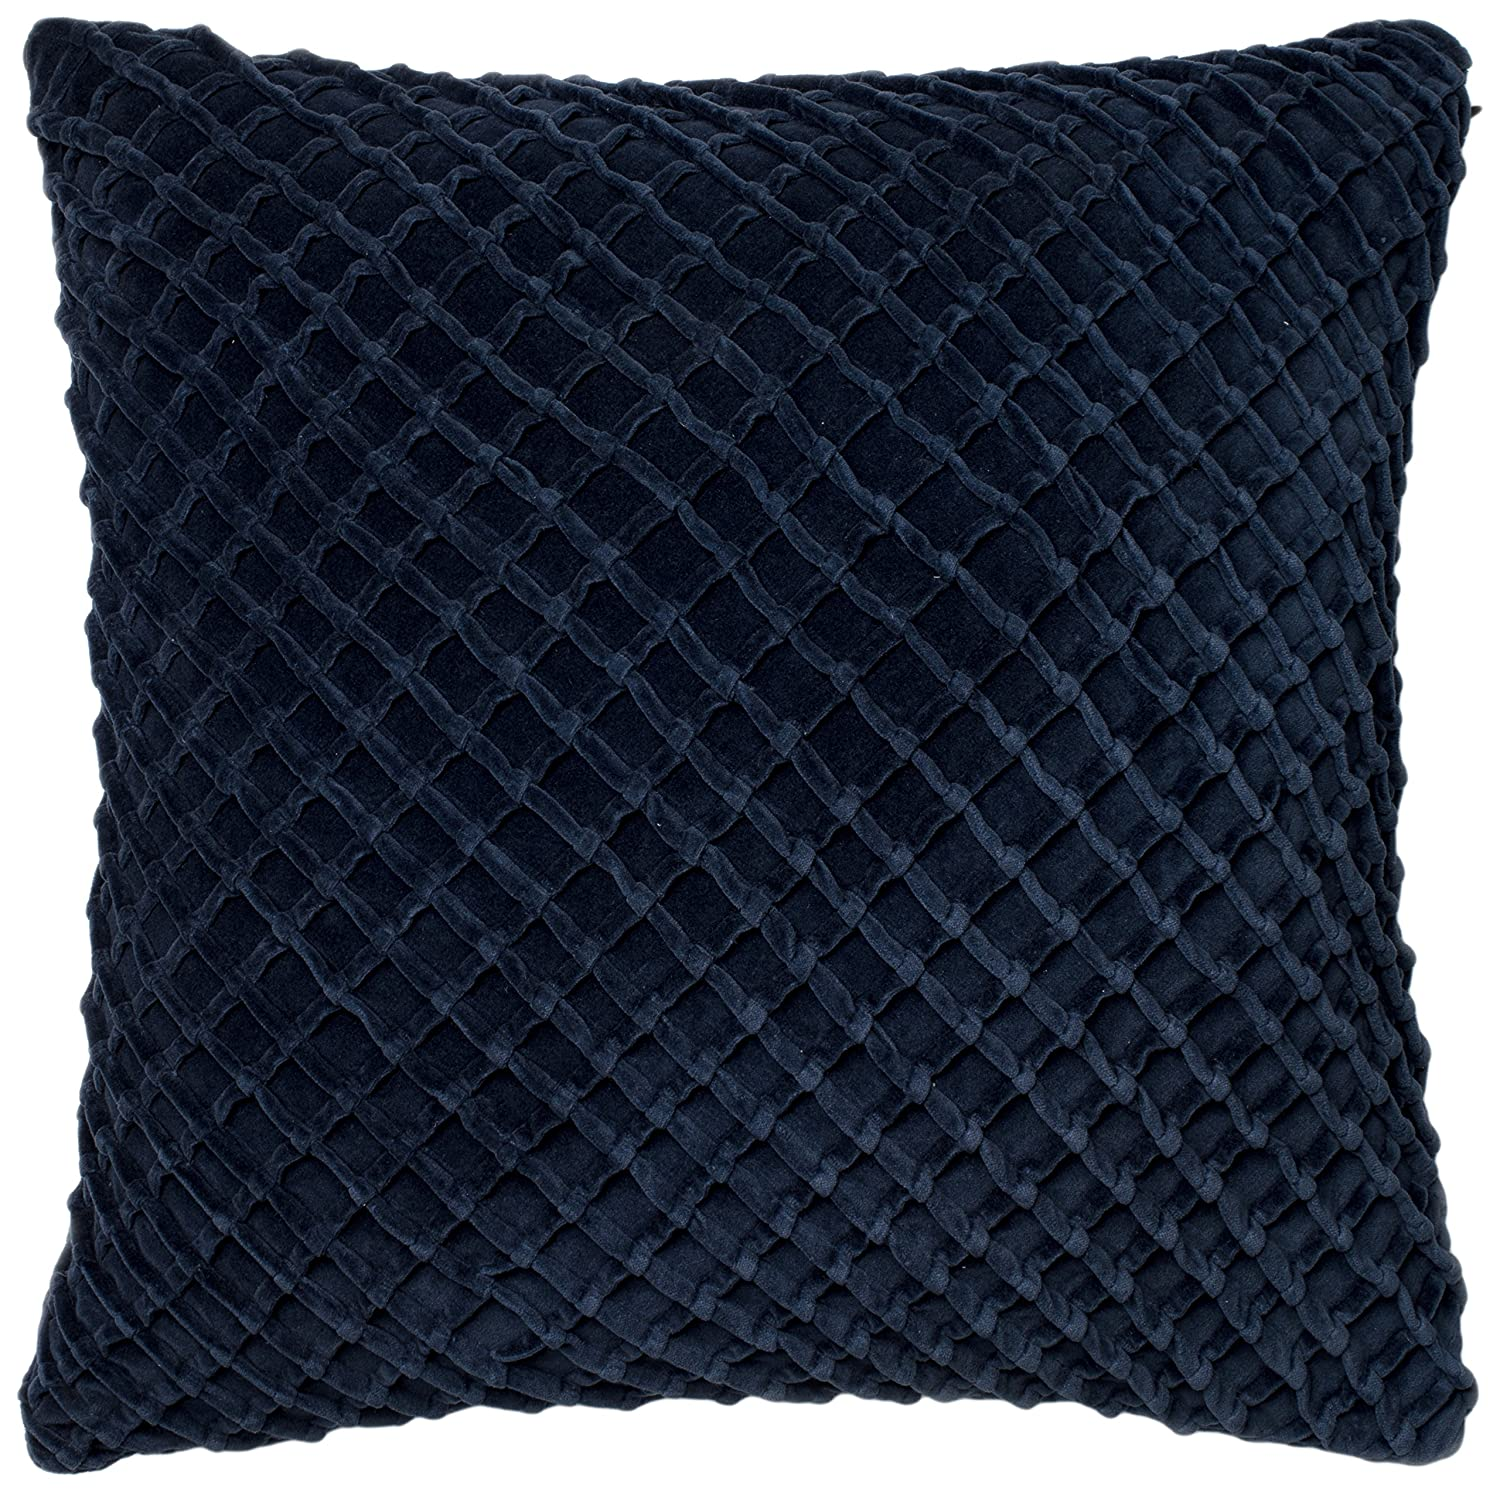 Loloi Loloi-PSETP0125NV00PIL3-Navy Decorative Accent Pillow 100/% Cotton Velvet Cover with Poly Fill 22 x 22 22 x 22 Navy Loloi Rugs Inc